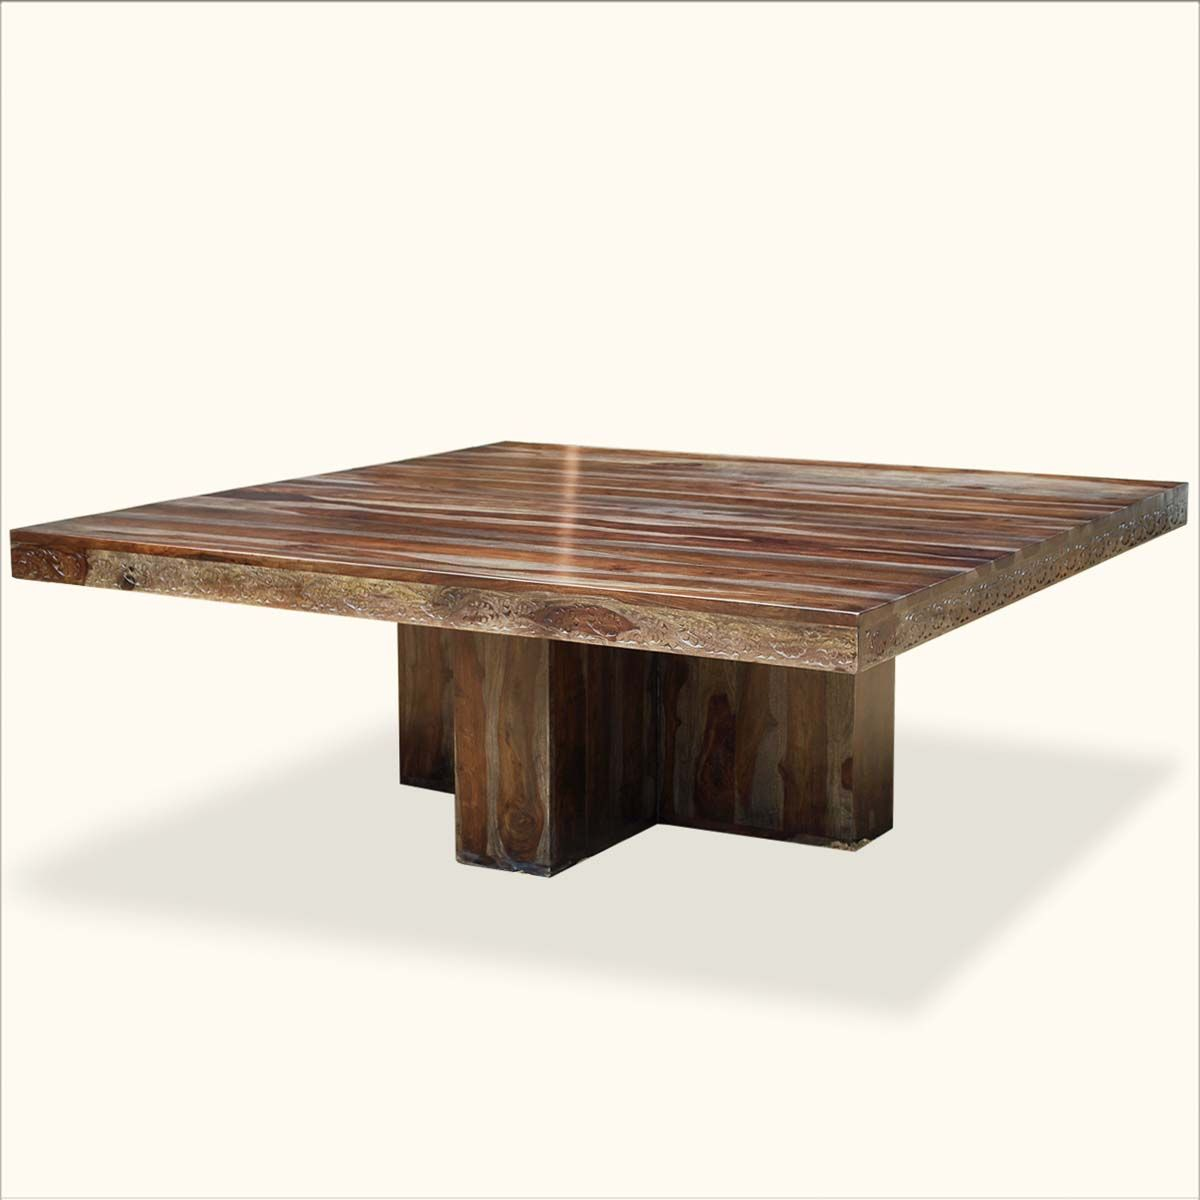 dallas ranch solid wood pedestal rustic large square dining room table - Square Wood Dining Table